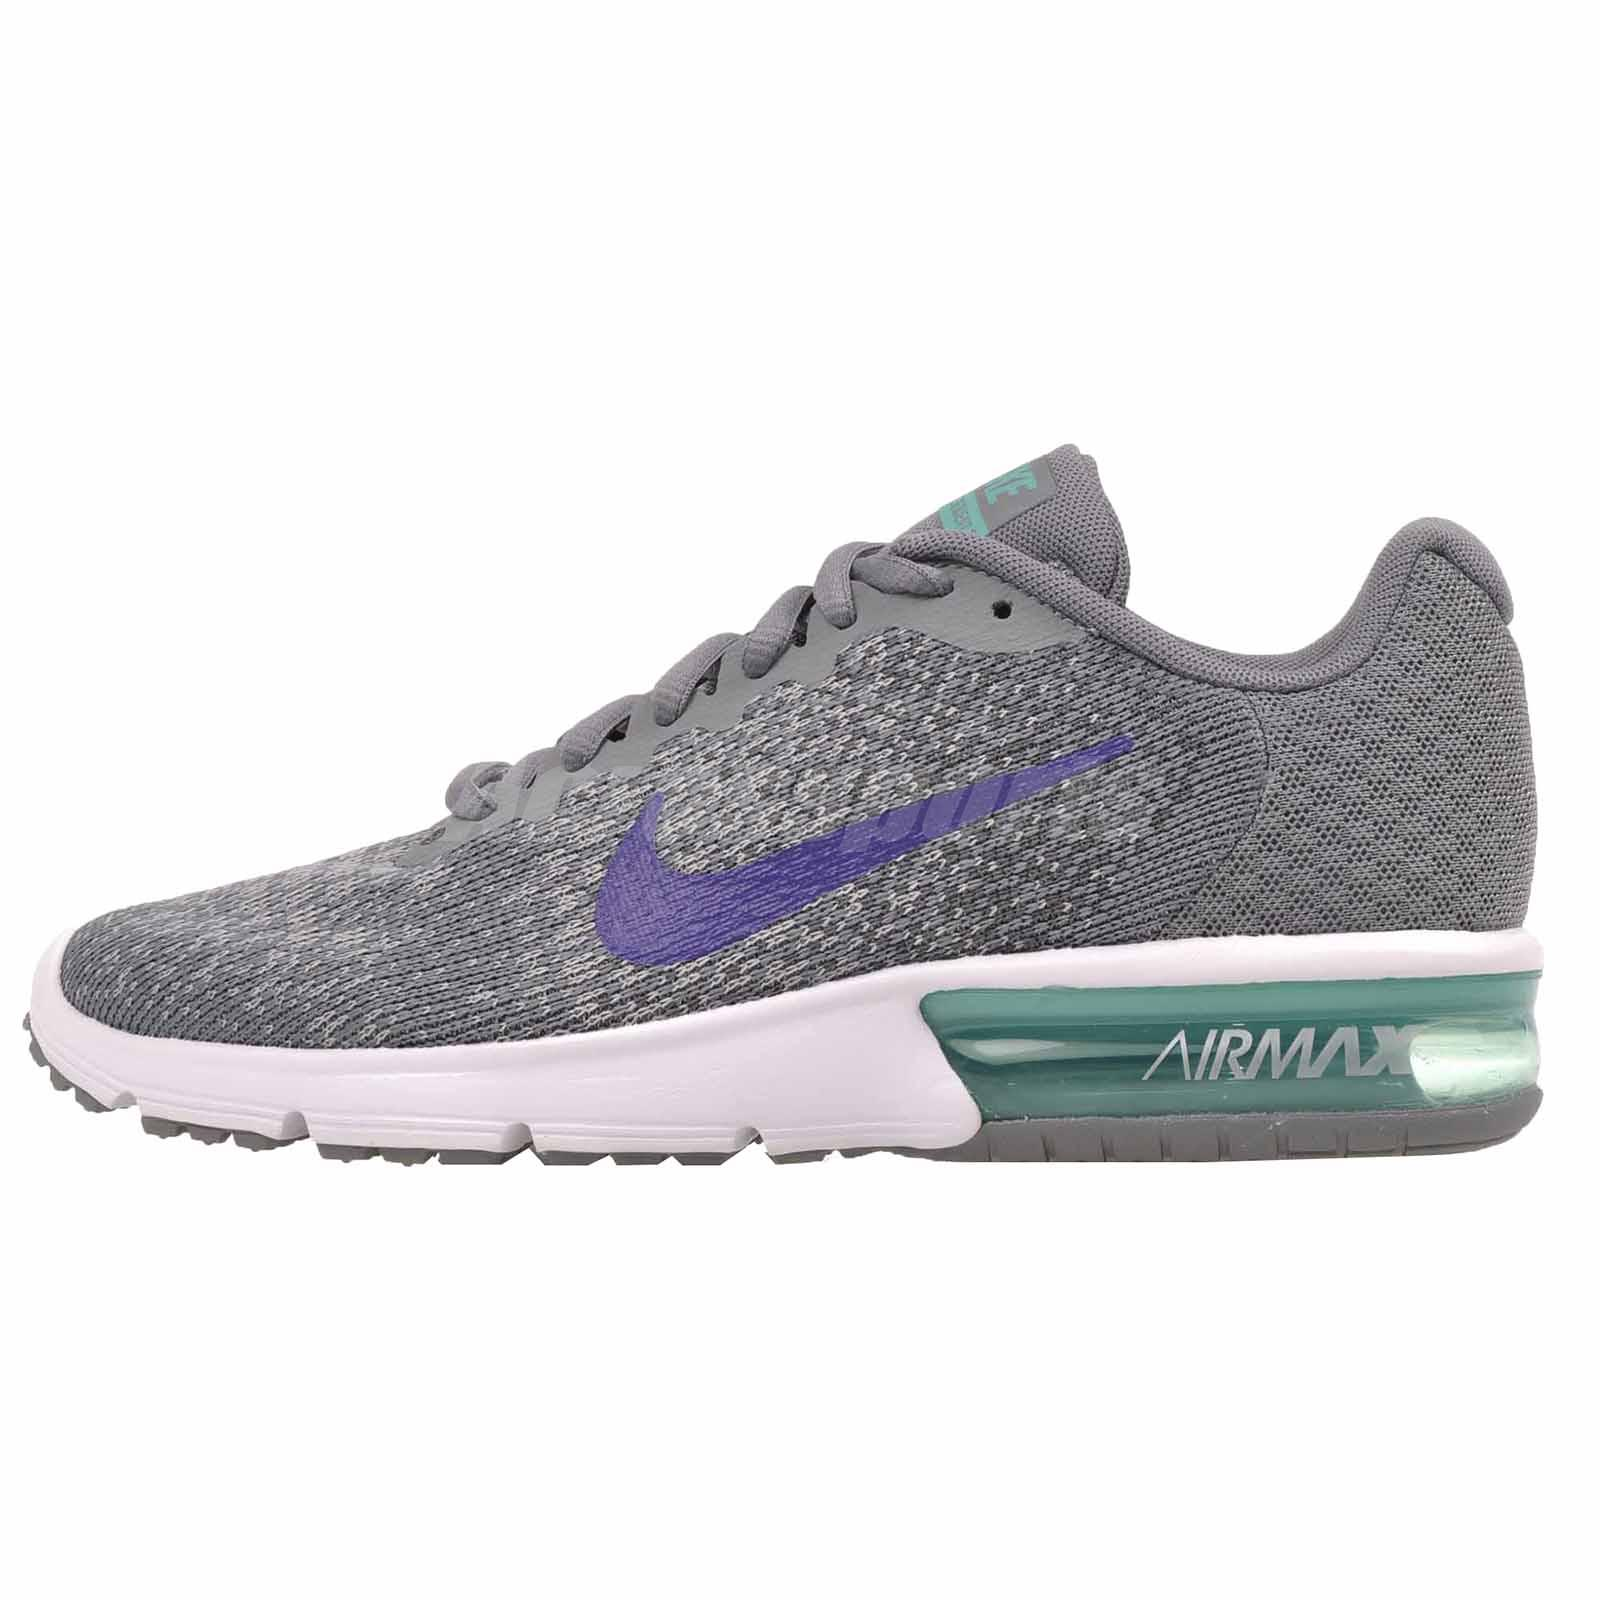 Nike Wmns Air Max Sequent 2 Running Womens Shoes Grey 852465-012